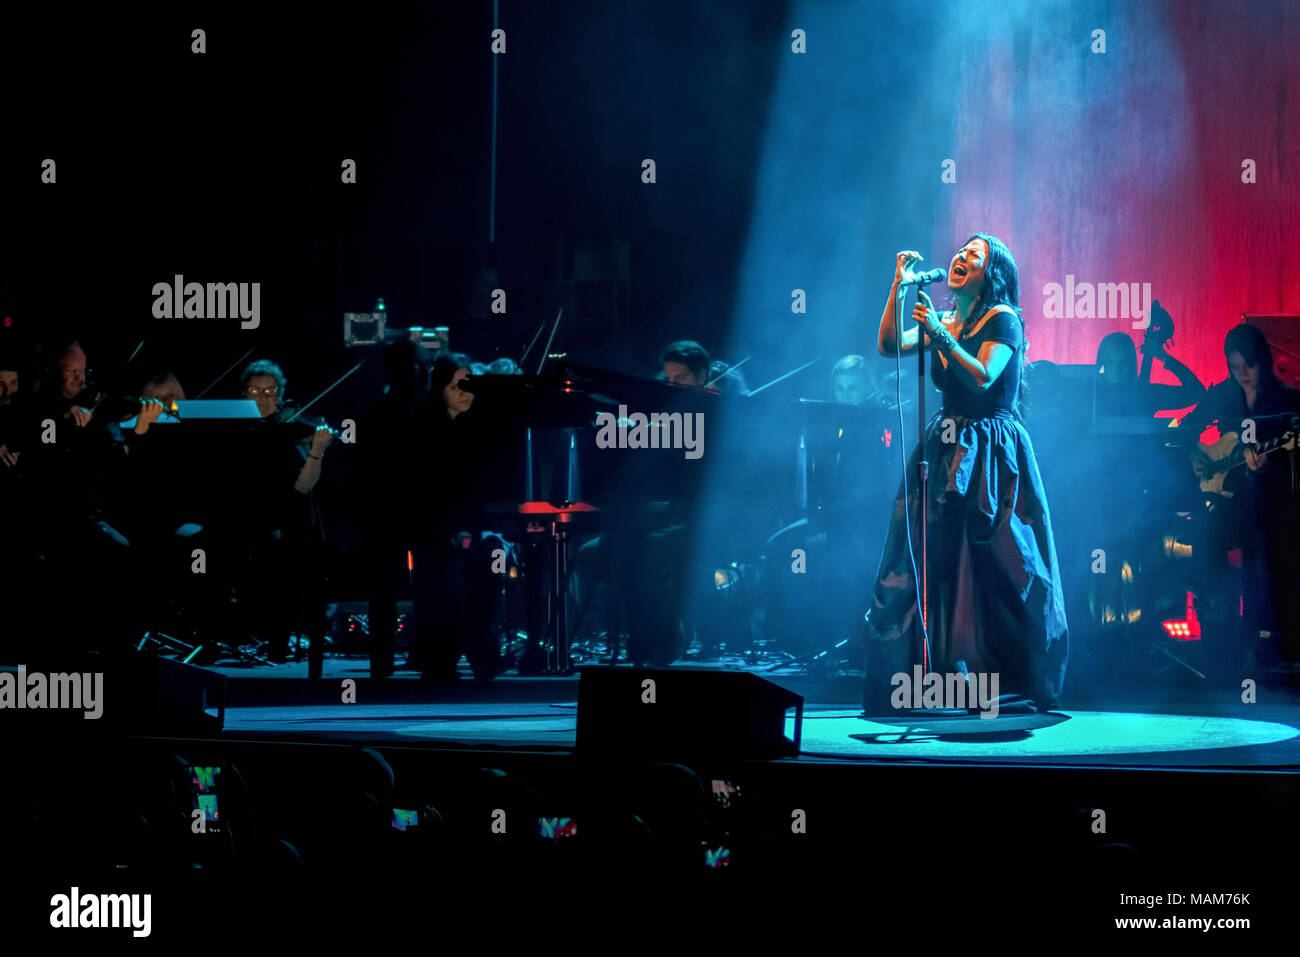 April 2, 2018 - AMY LEE lead singer of US band Evanescence live at a ...